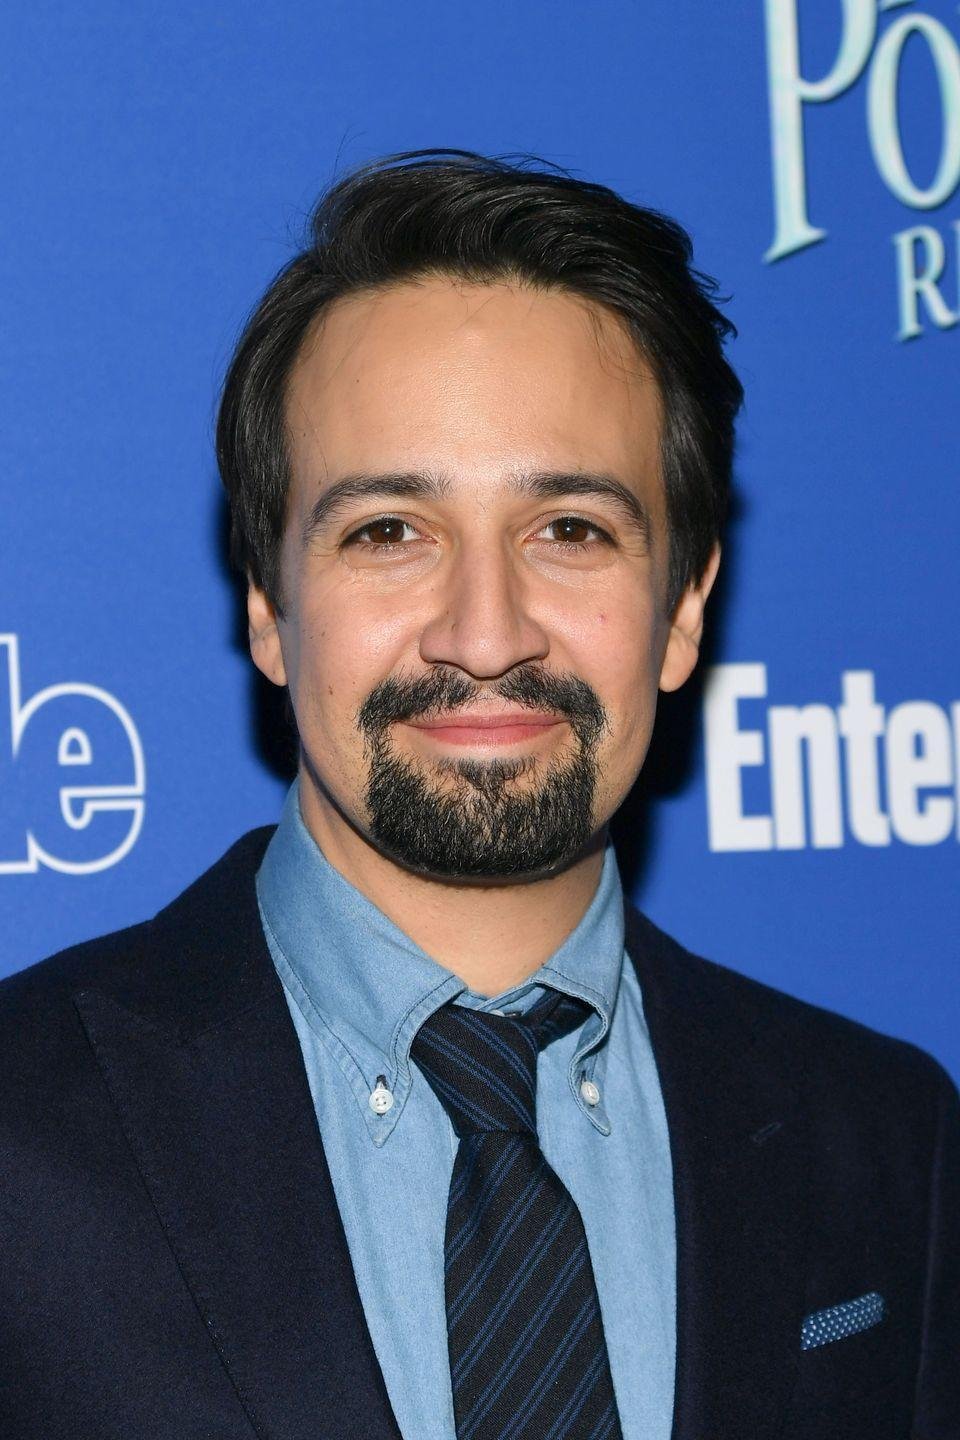 "<p>The playwright and actor shared on <a href=""https://twitter.com/lin_manuel/status/867408017763041281?lang=en"" rel=""nofollow noopener"" target=""_blank"" data-ylk=""slk:Twitter"" class=""link rapid-noclick-resp"">Twitter</a>, ""My first job was working the cash register and deliveries for McDonald's."" He shared a song inspired by his time working there, and even got some praise from the <a href=""https://twitter.com/McDonalds/status/867497687213649920"" rel=""nofollow noopener"" target=""_blank"" data-ylk=""slk:McDonald's Twitter account"" class=""link rapid-noclick-resp"">McDonald's Twitter account</a>.</p>"